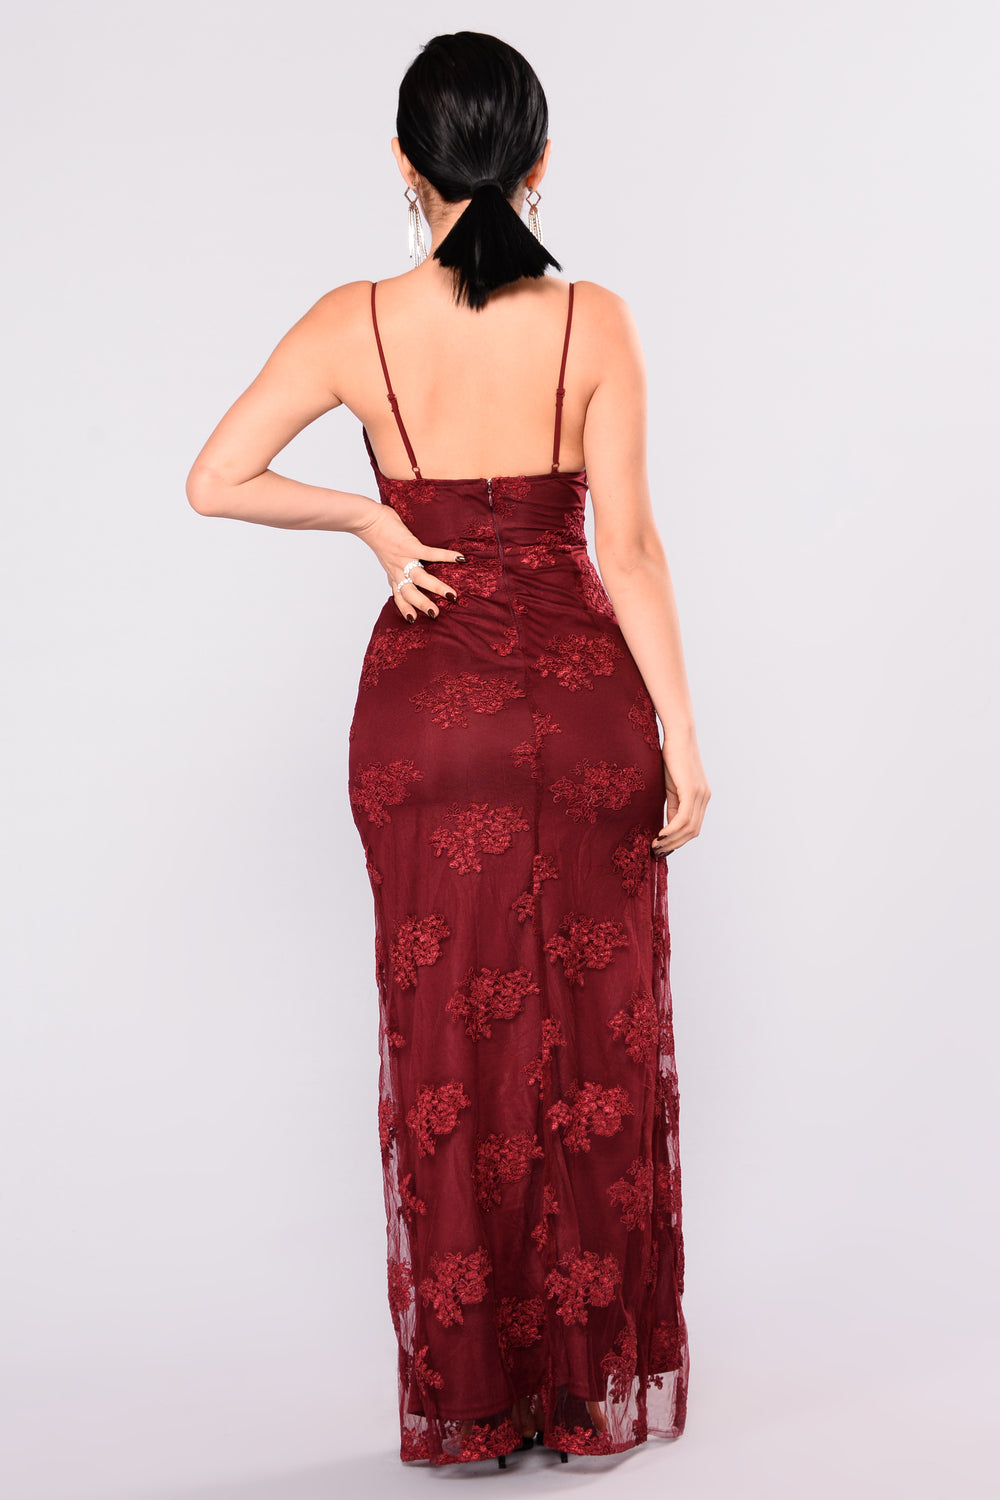 A Night In Tokyo Lace Dress - Burgundy